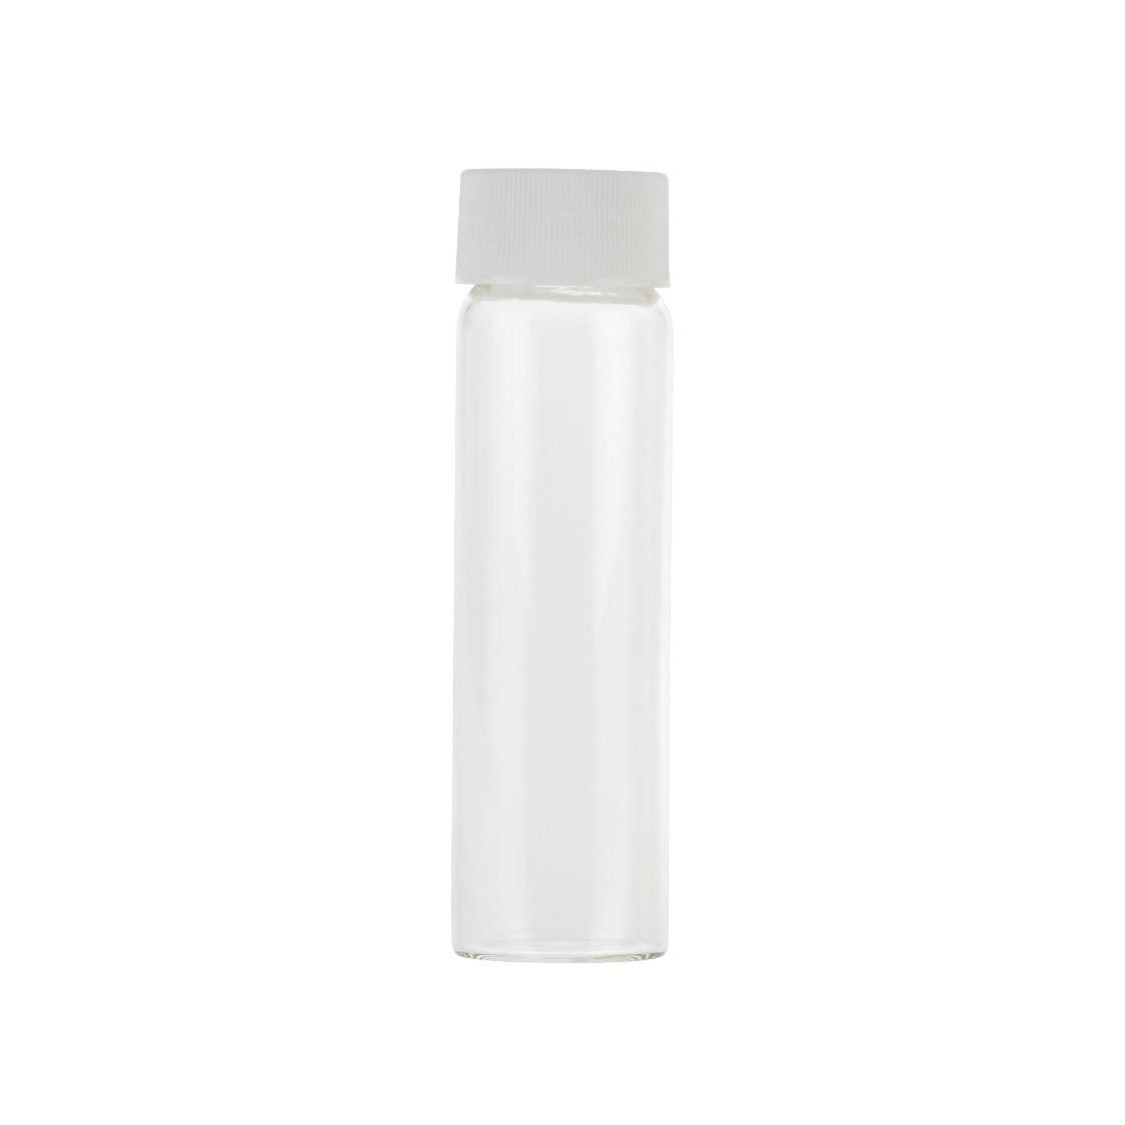 40ml Clear Glass Vial with Septa Seal and Hole Cap